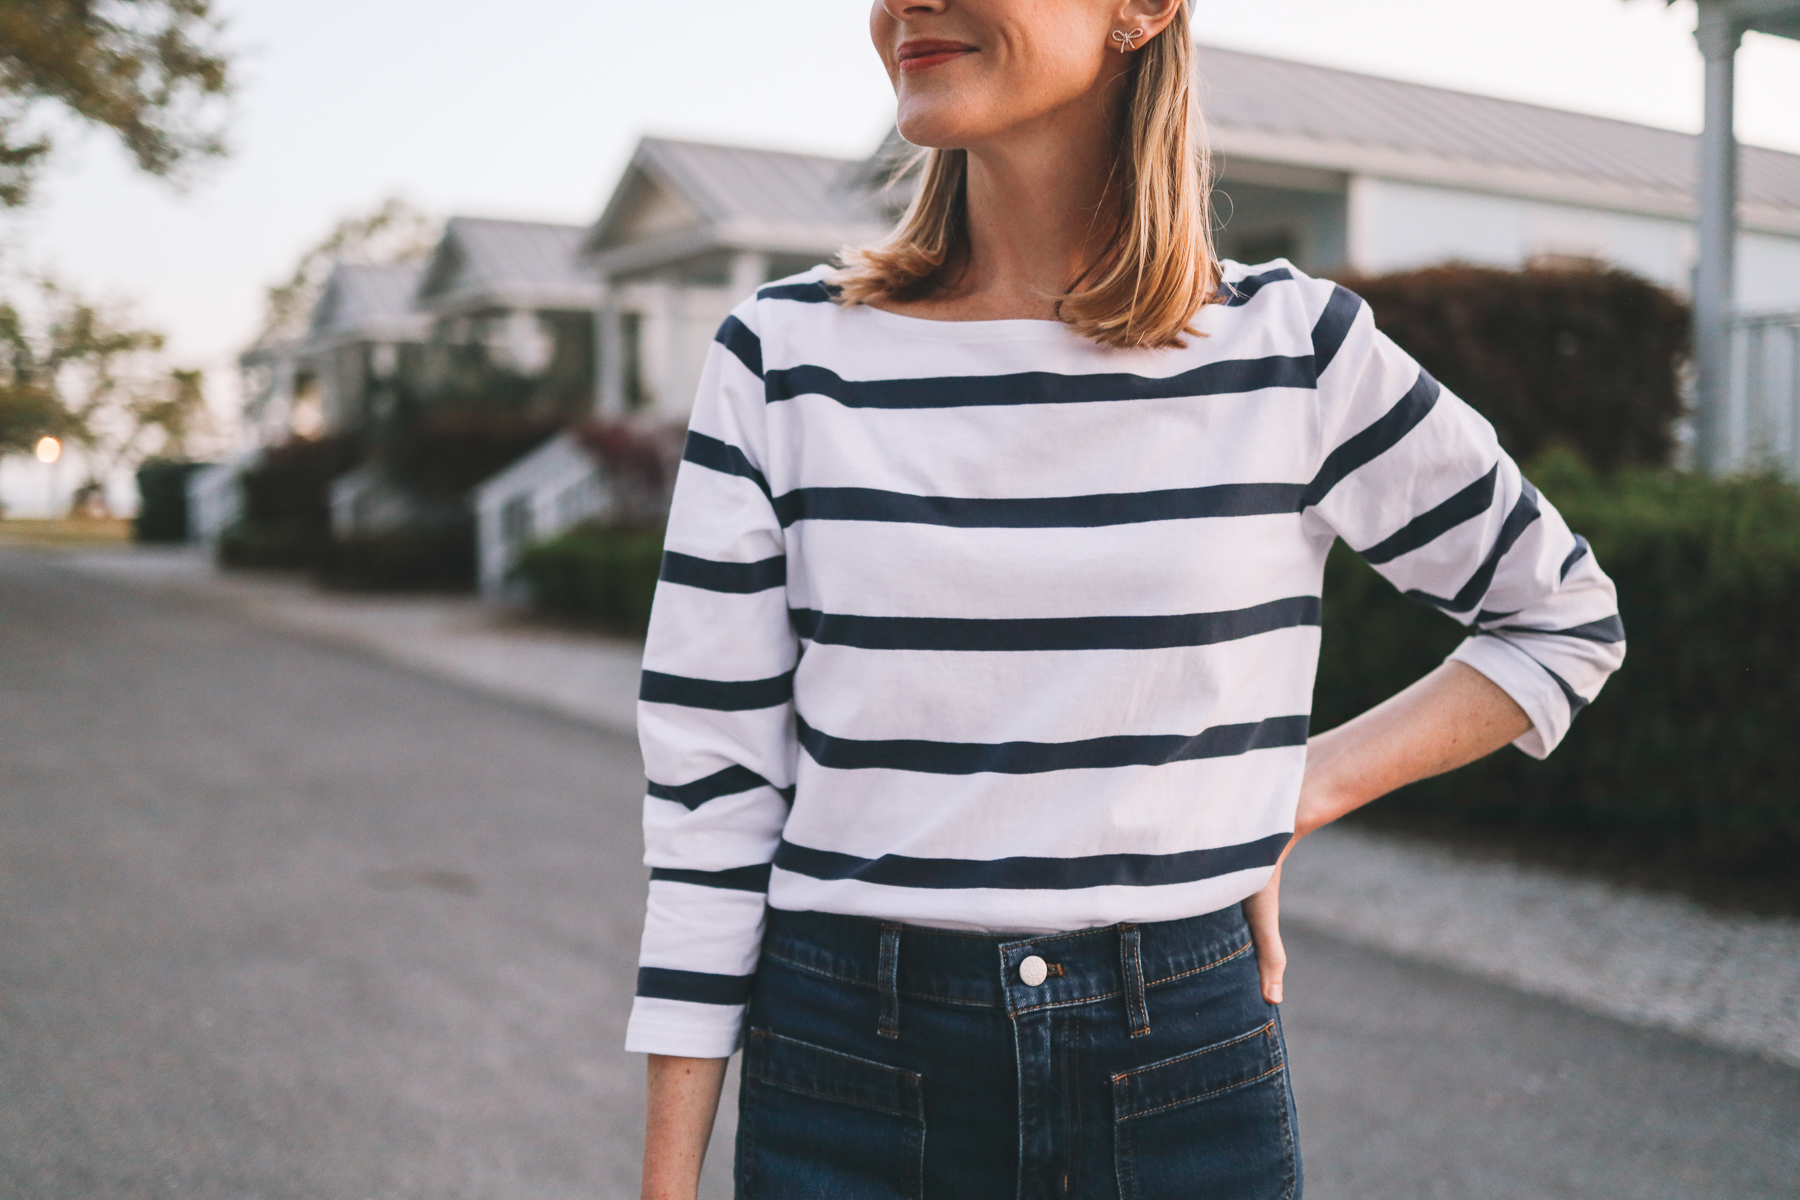 Striped Boatneck Top | Spring Date Night Outfit